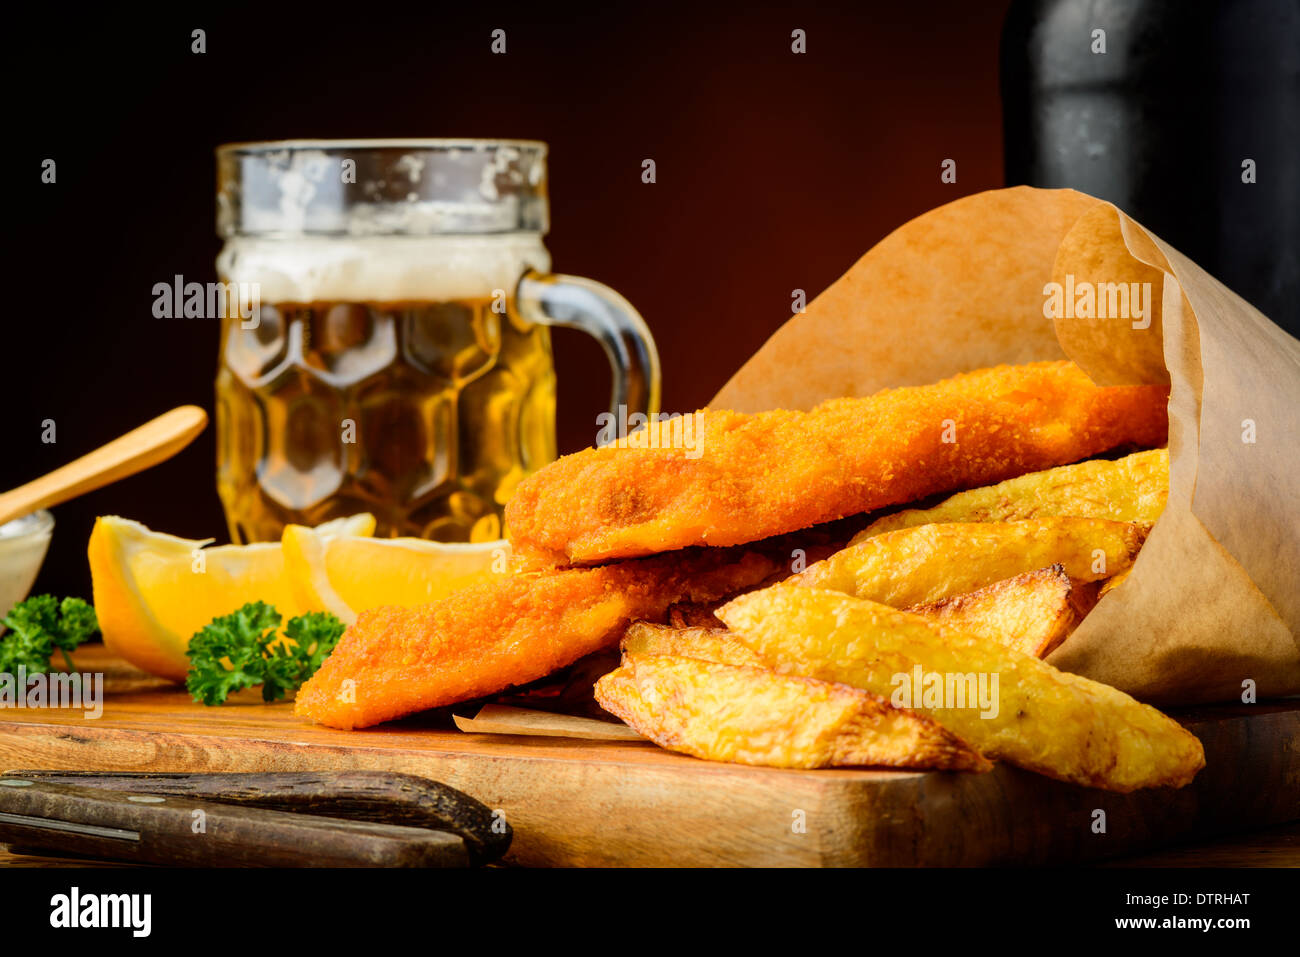 still life with fish and chips meal and glass of beer - Stock Image